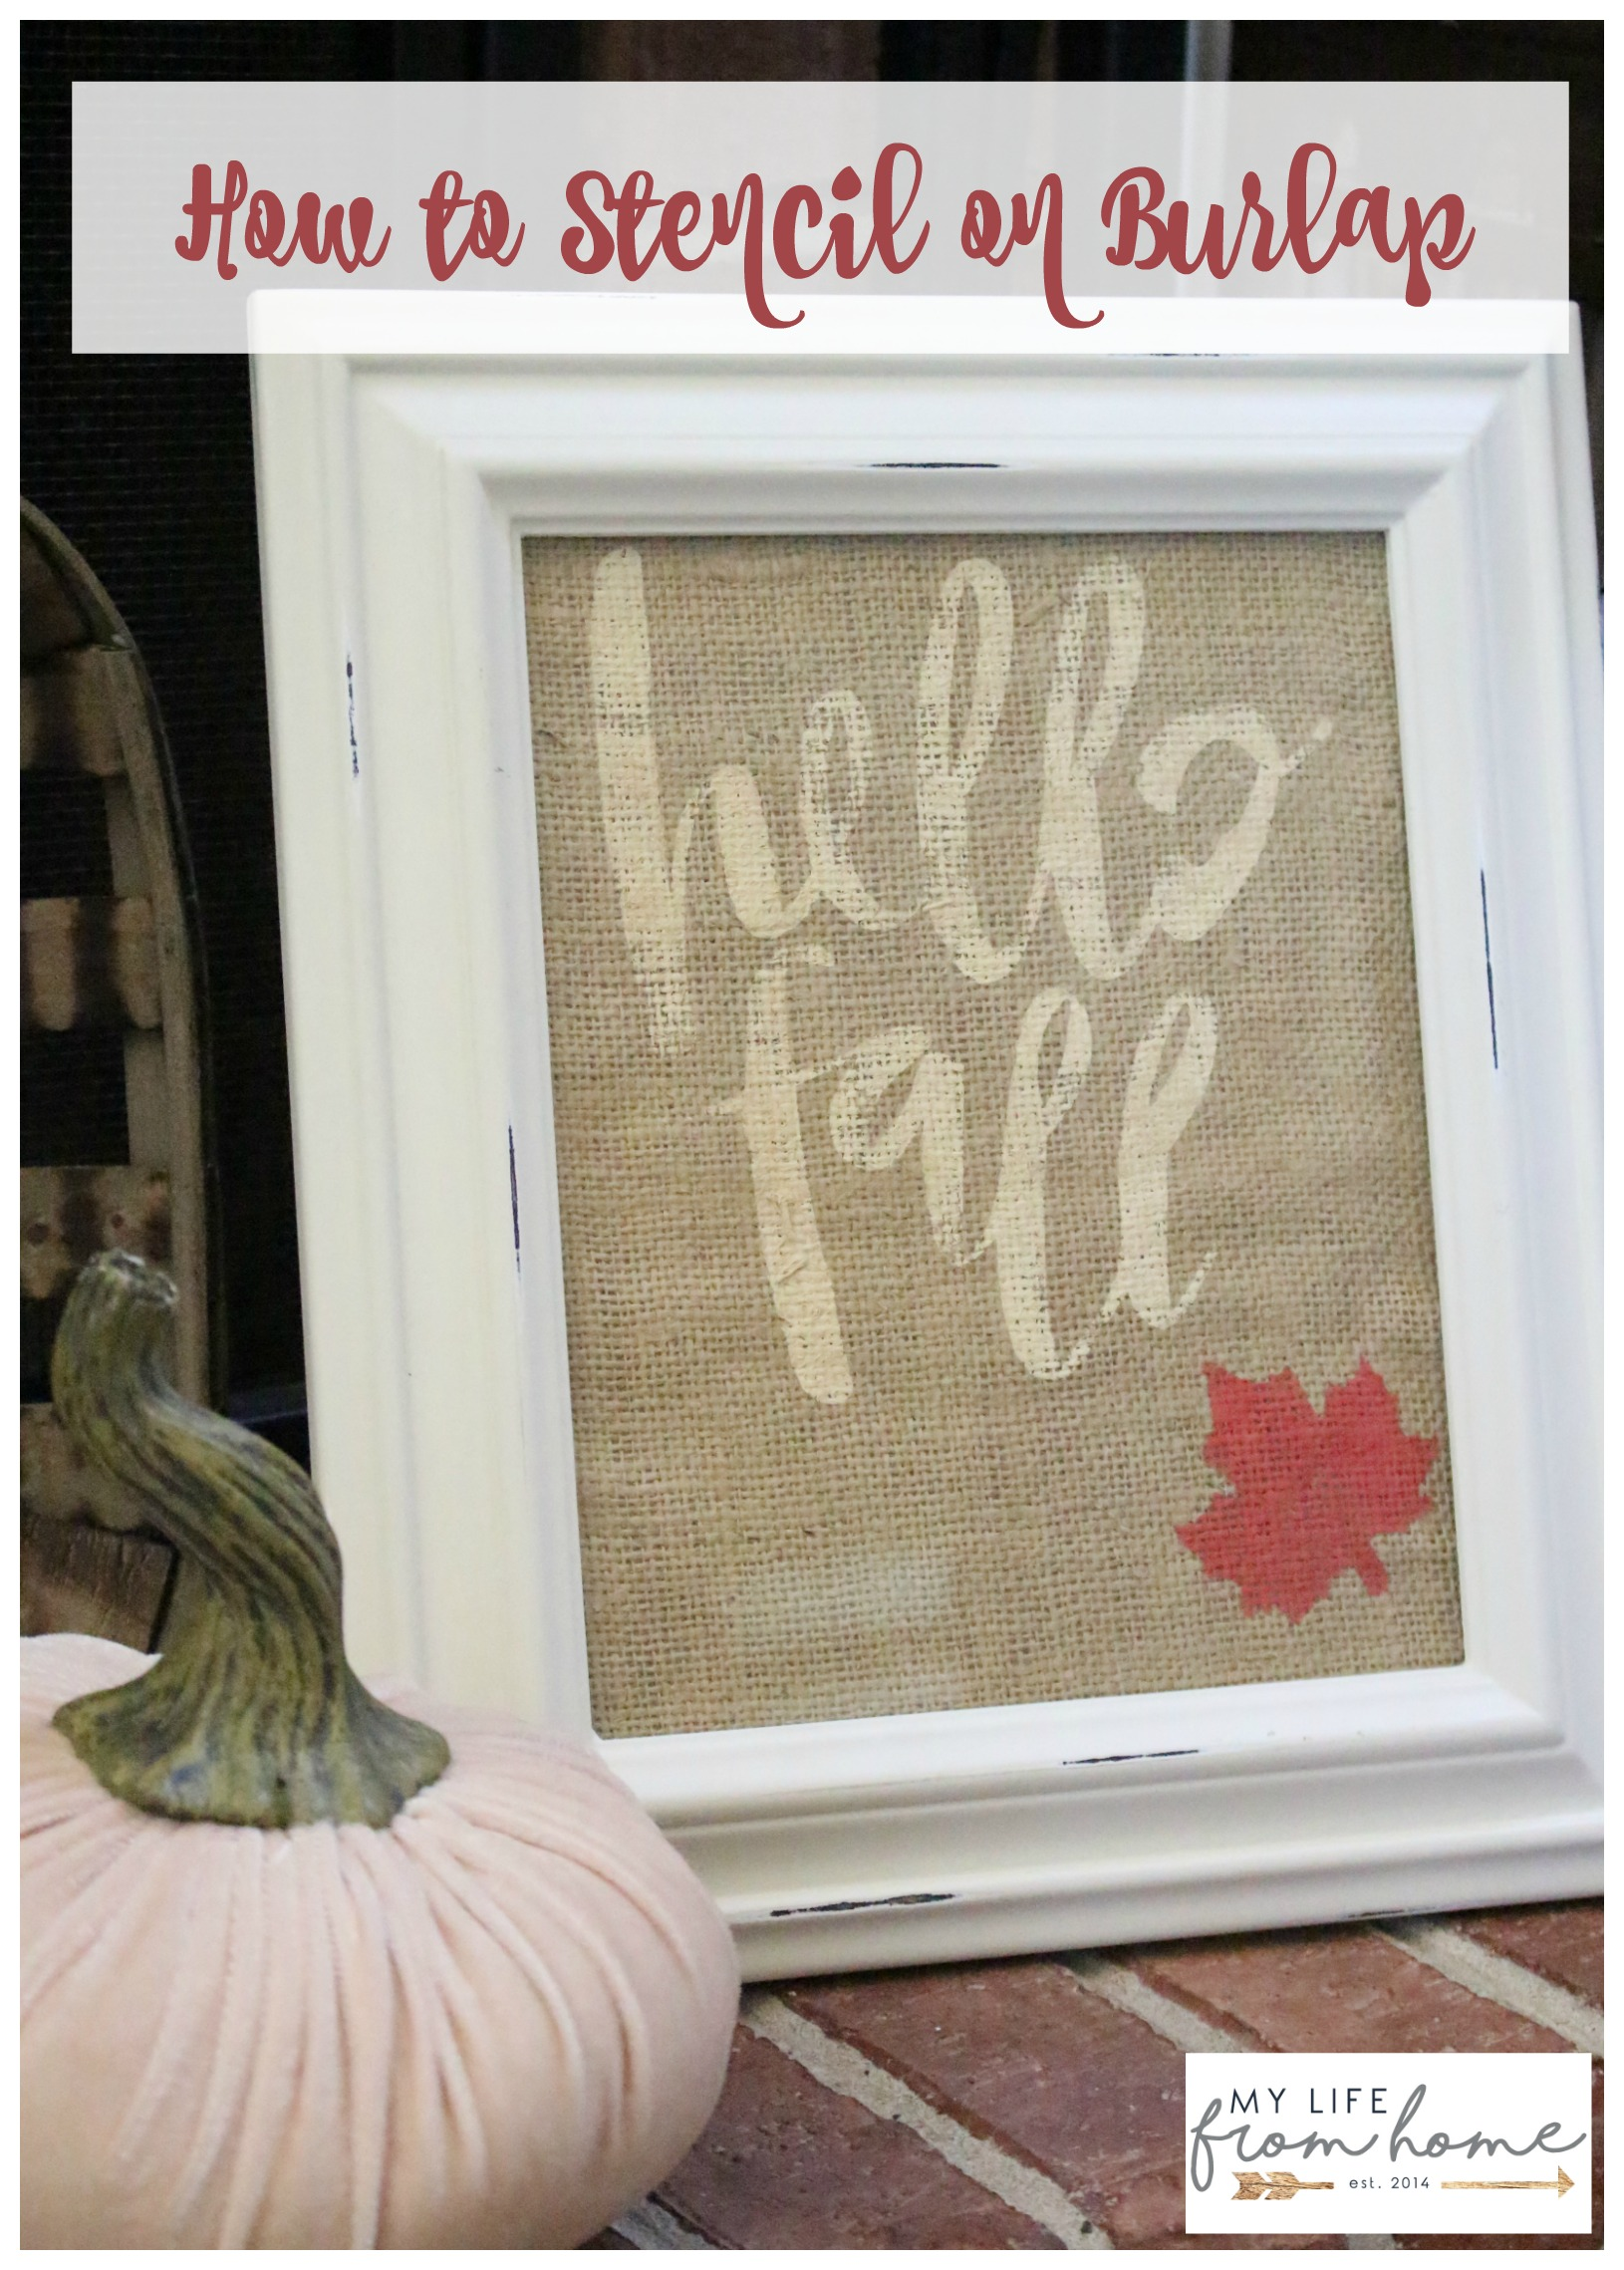 how-to-stencil-on-burlap-silhouette-challenge-stencil-on-burlap-painting-fabric-burlap-project-autumn-projects-fall-art-crafts-for-fall-seasonal-decor